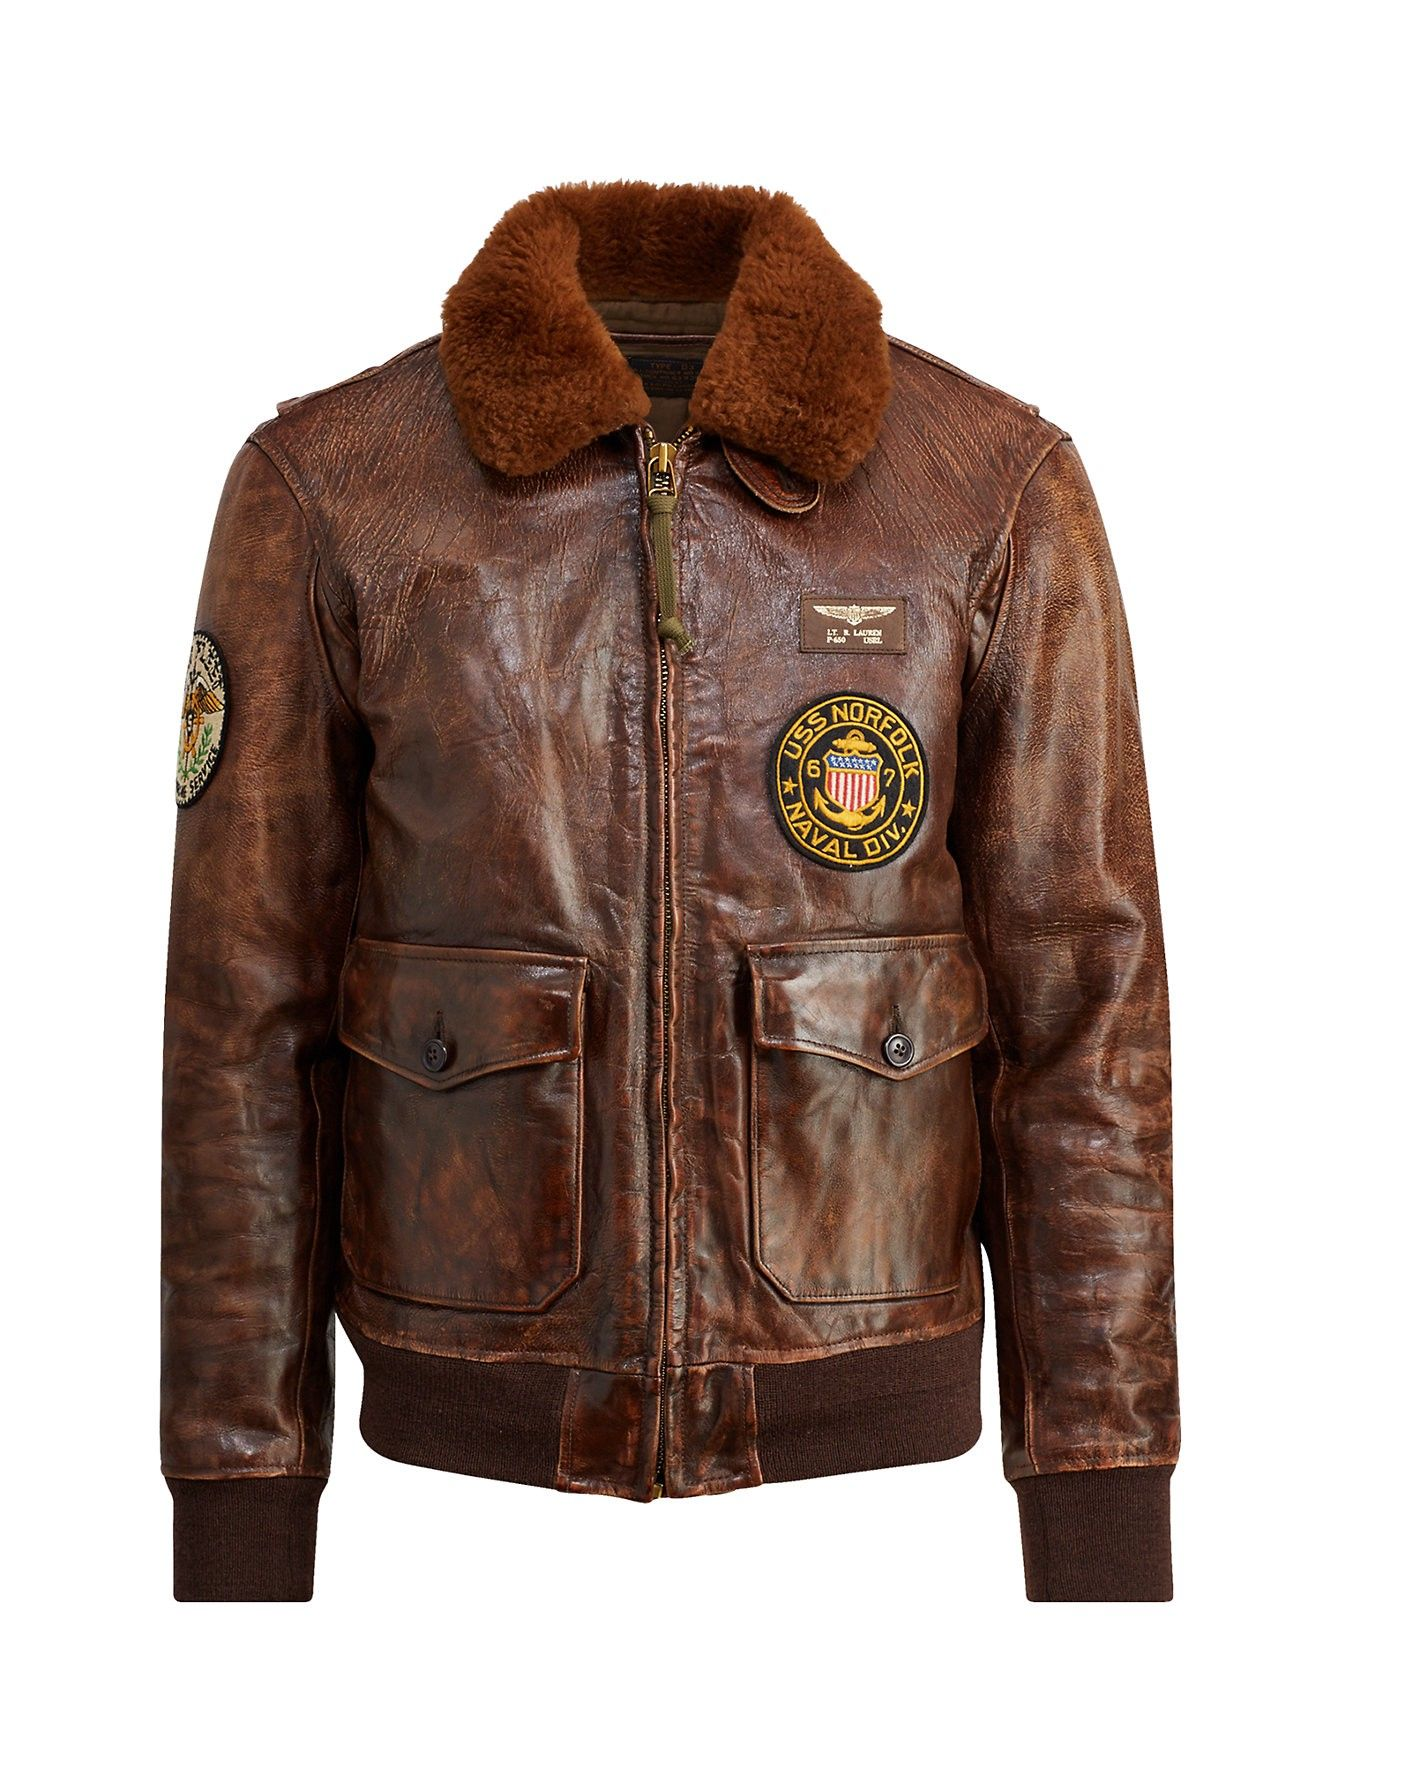 Polo Ralph Lauren The Iconic G1 Bomber Jacket In Bison